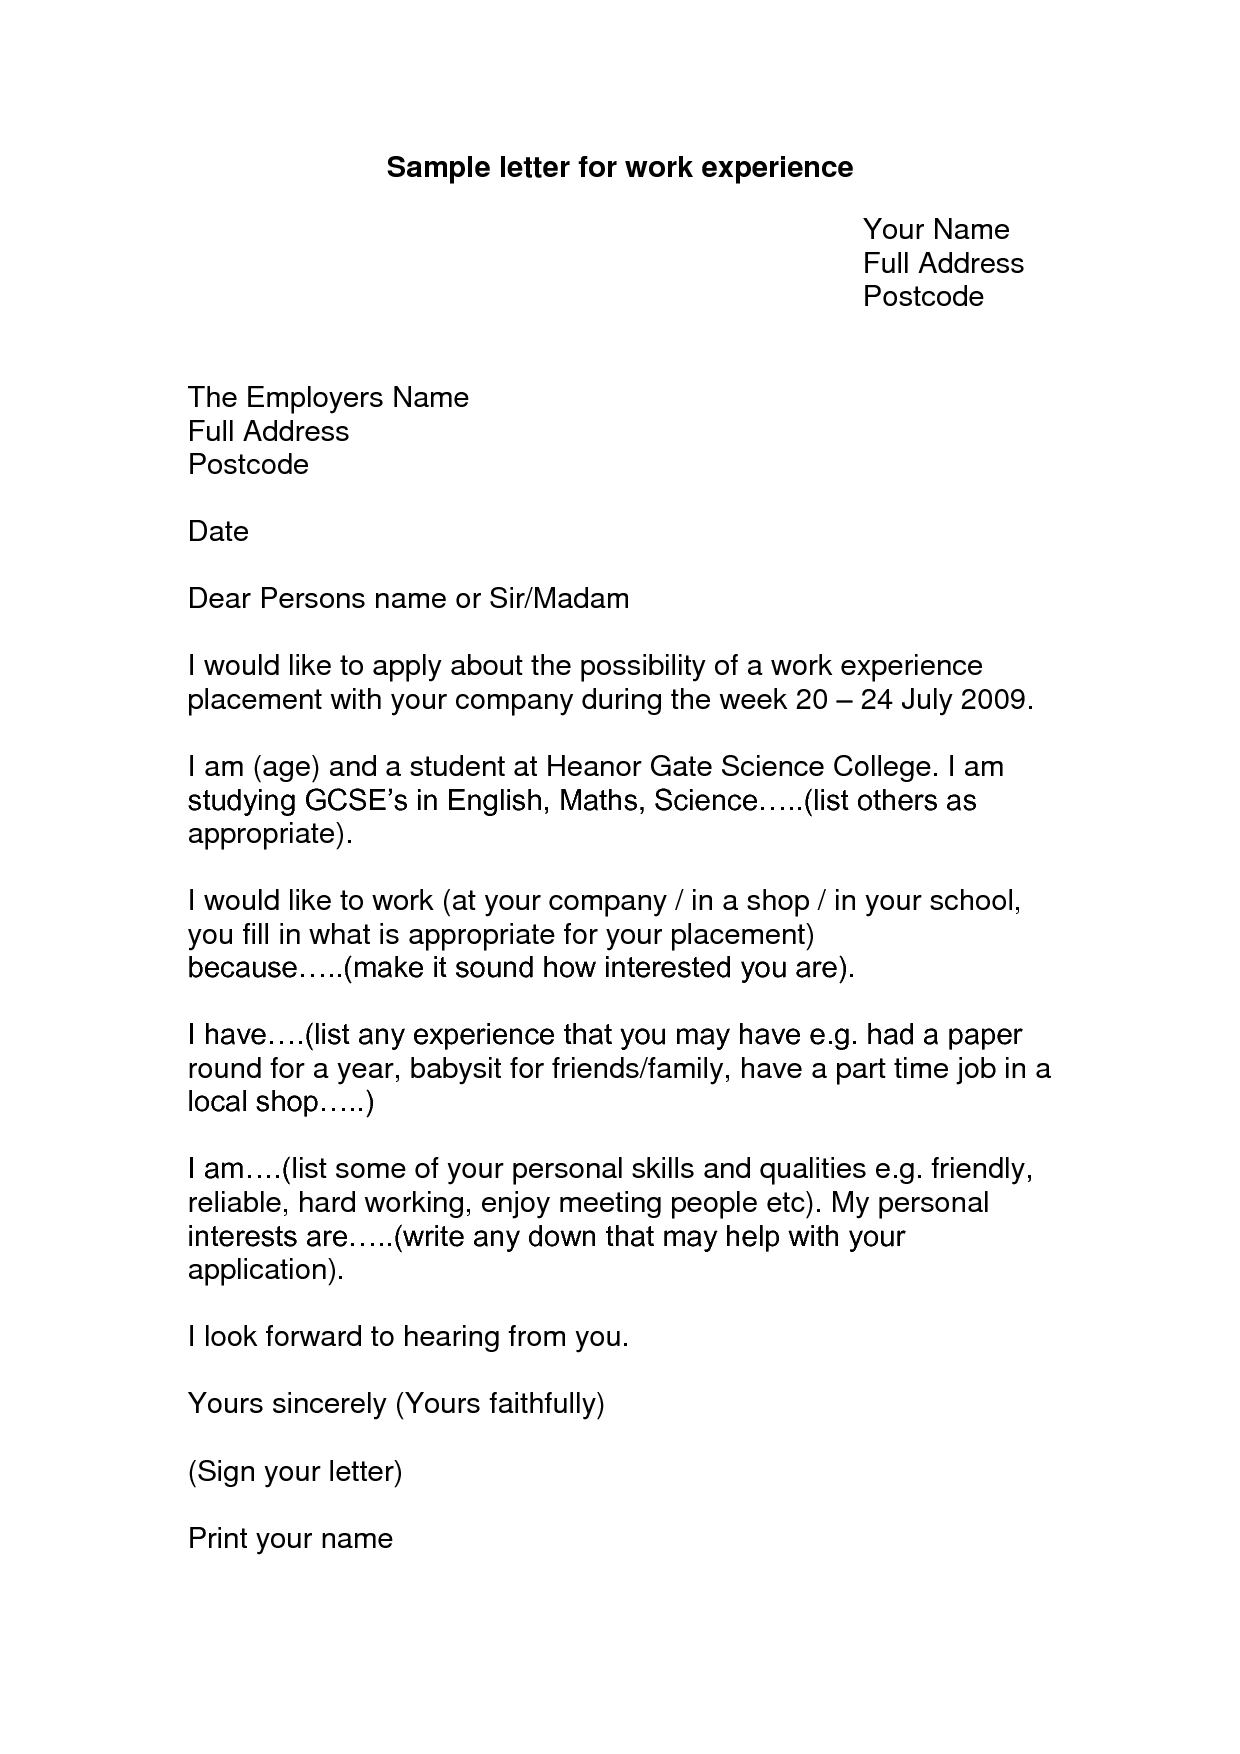 write a cover letter for work experience